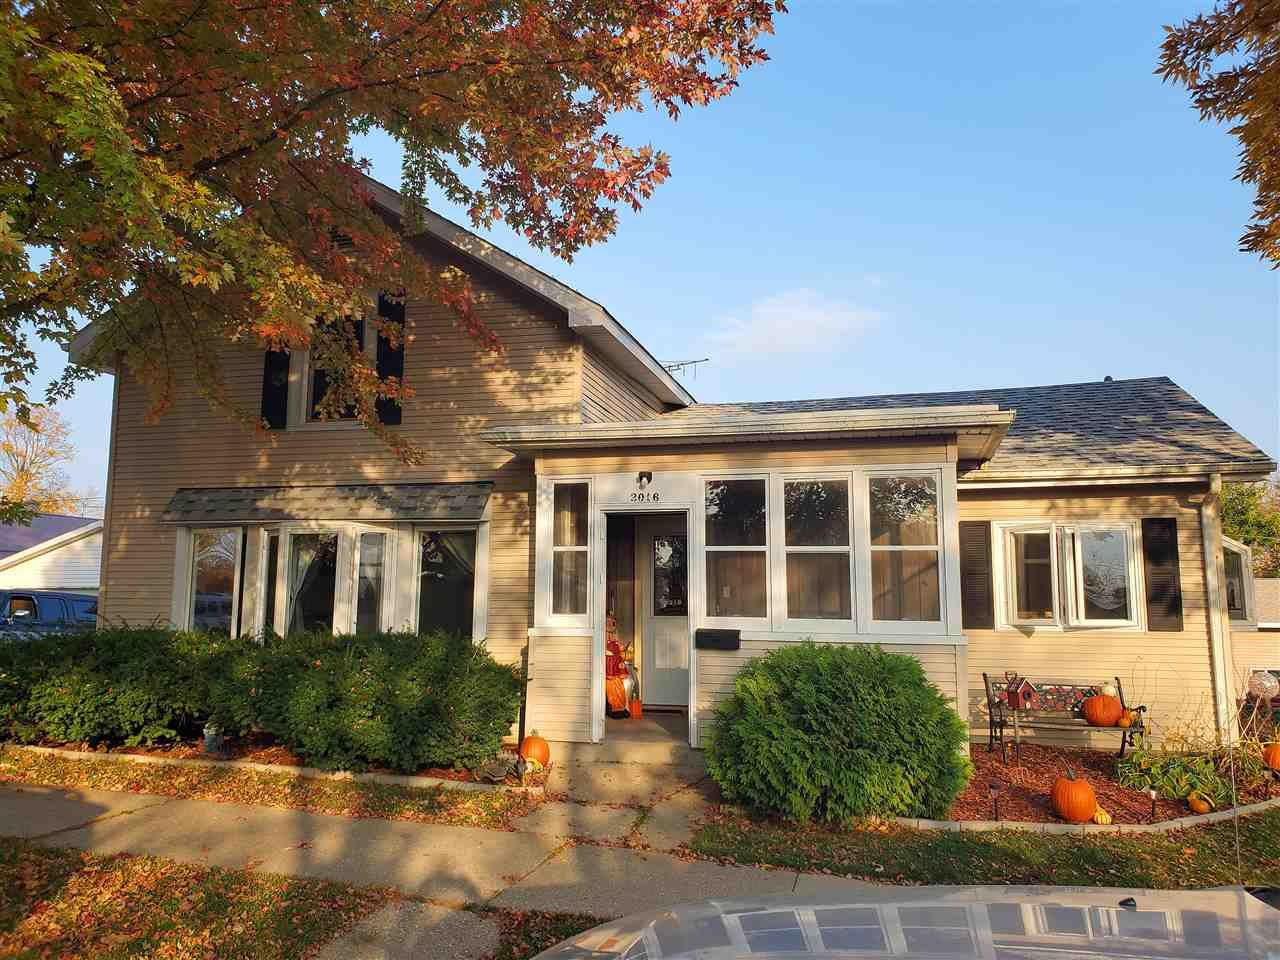 2016 15th Ave, Monroe, WI 53566 - #: 1895742